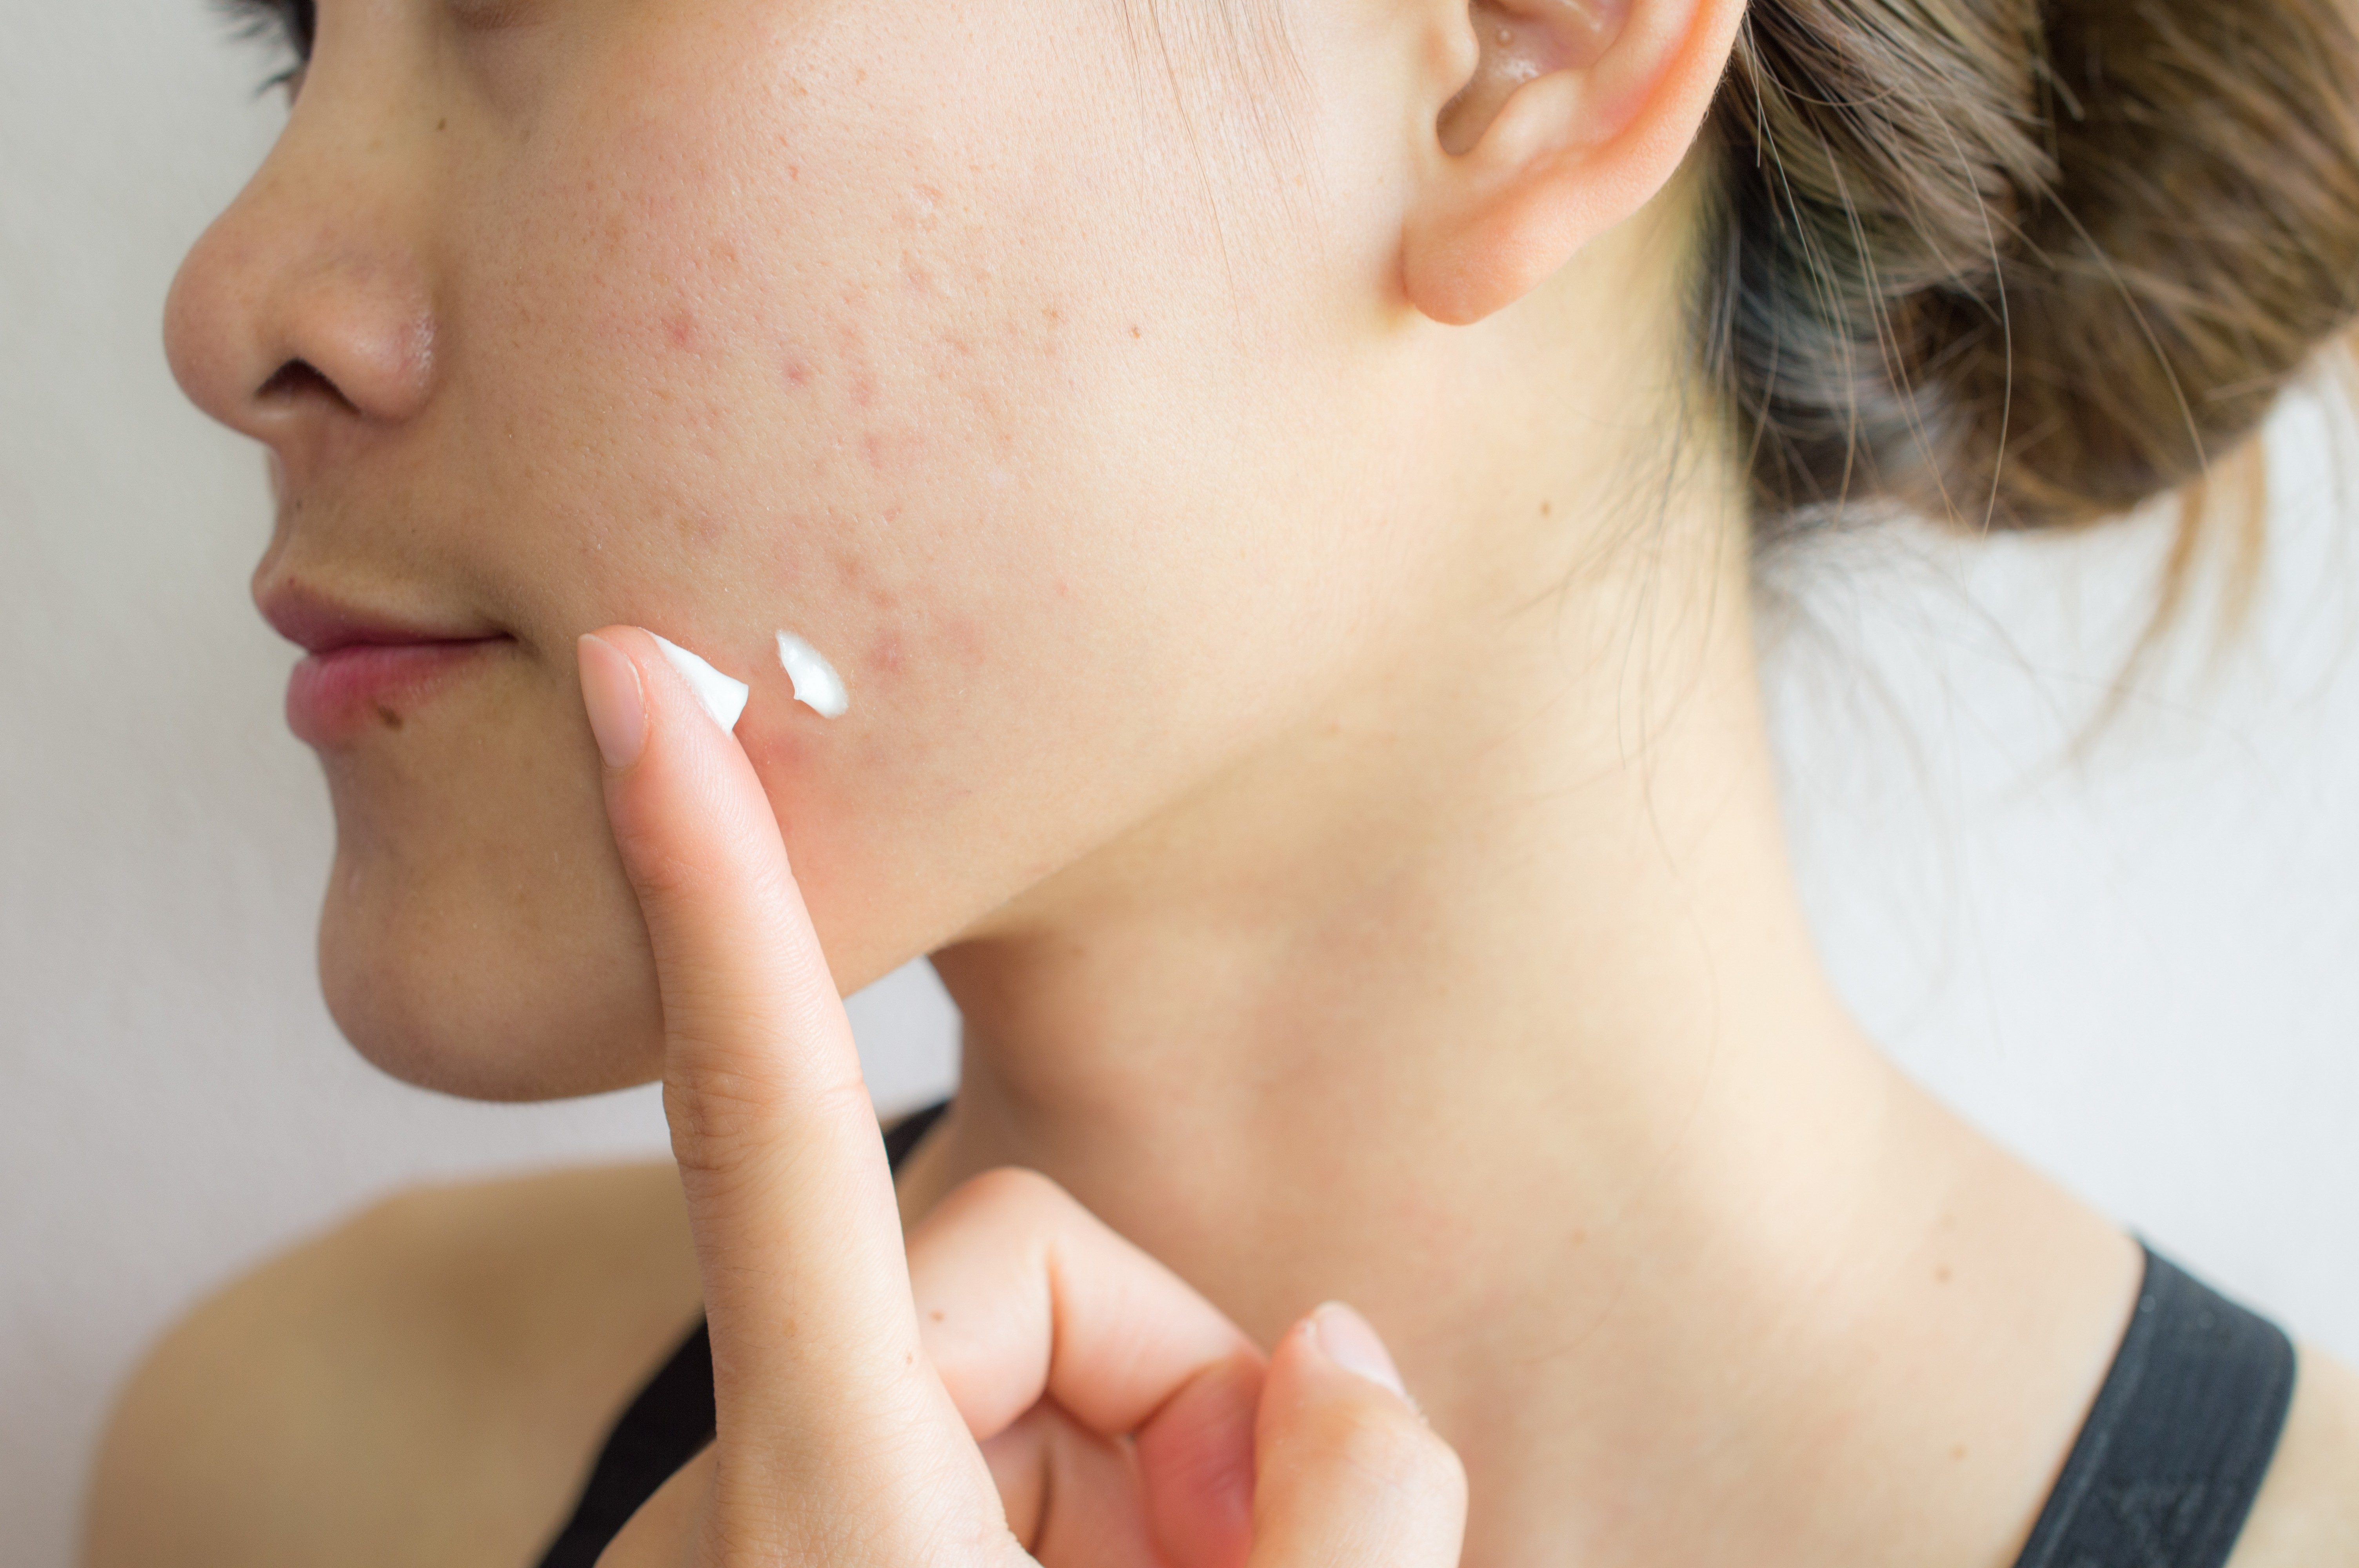 How to Get Rid of Scars, According to Dermatologists | Reader's Digest